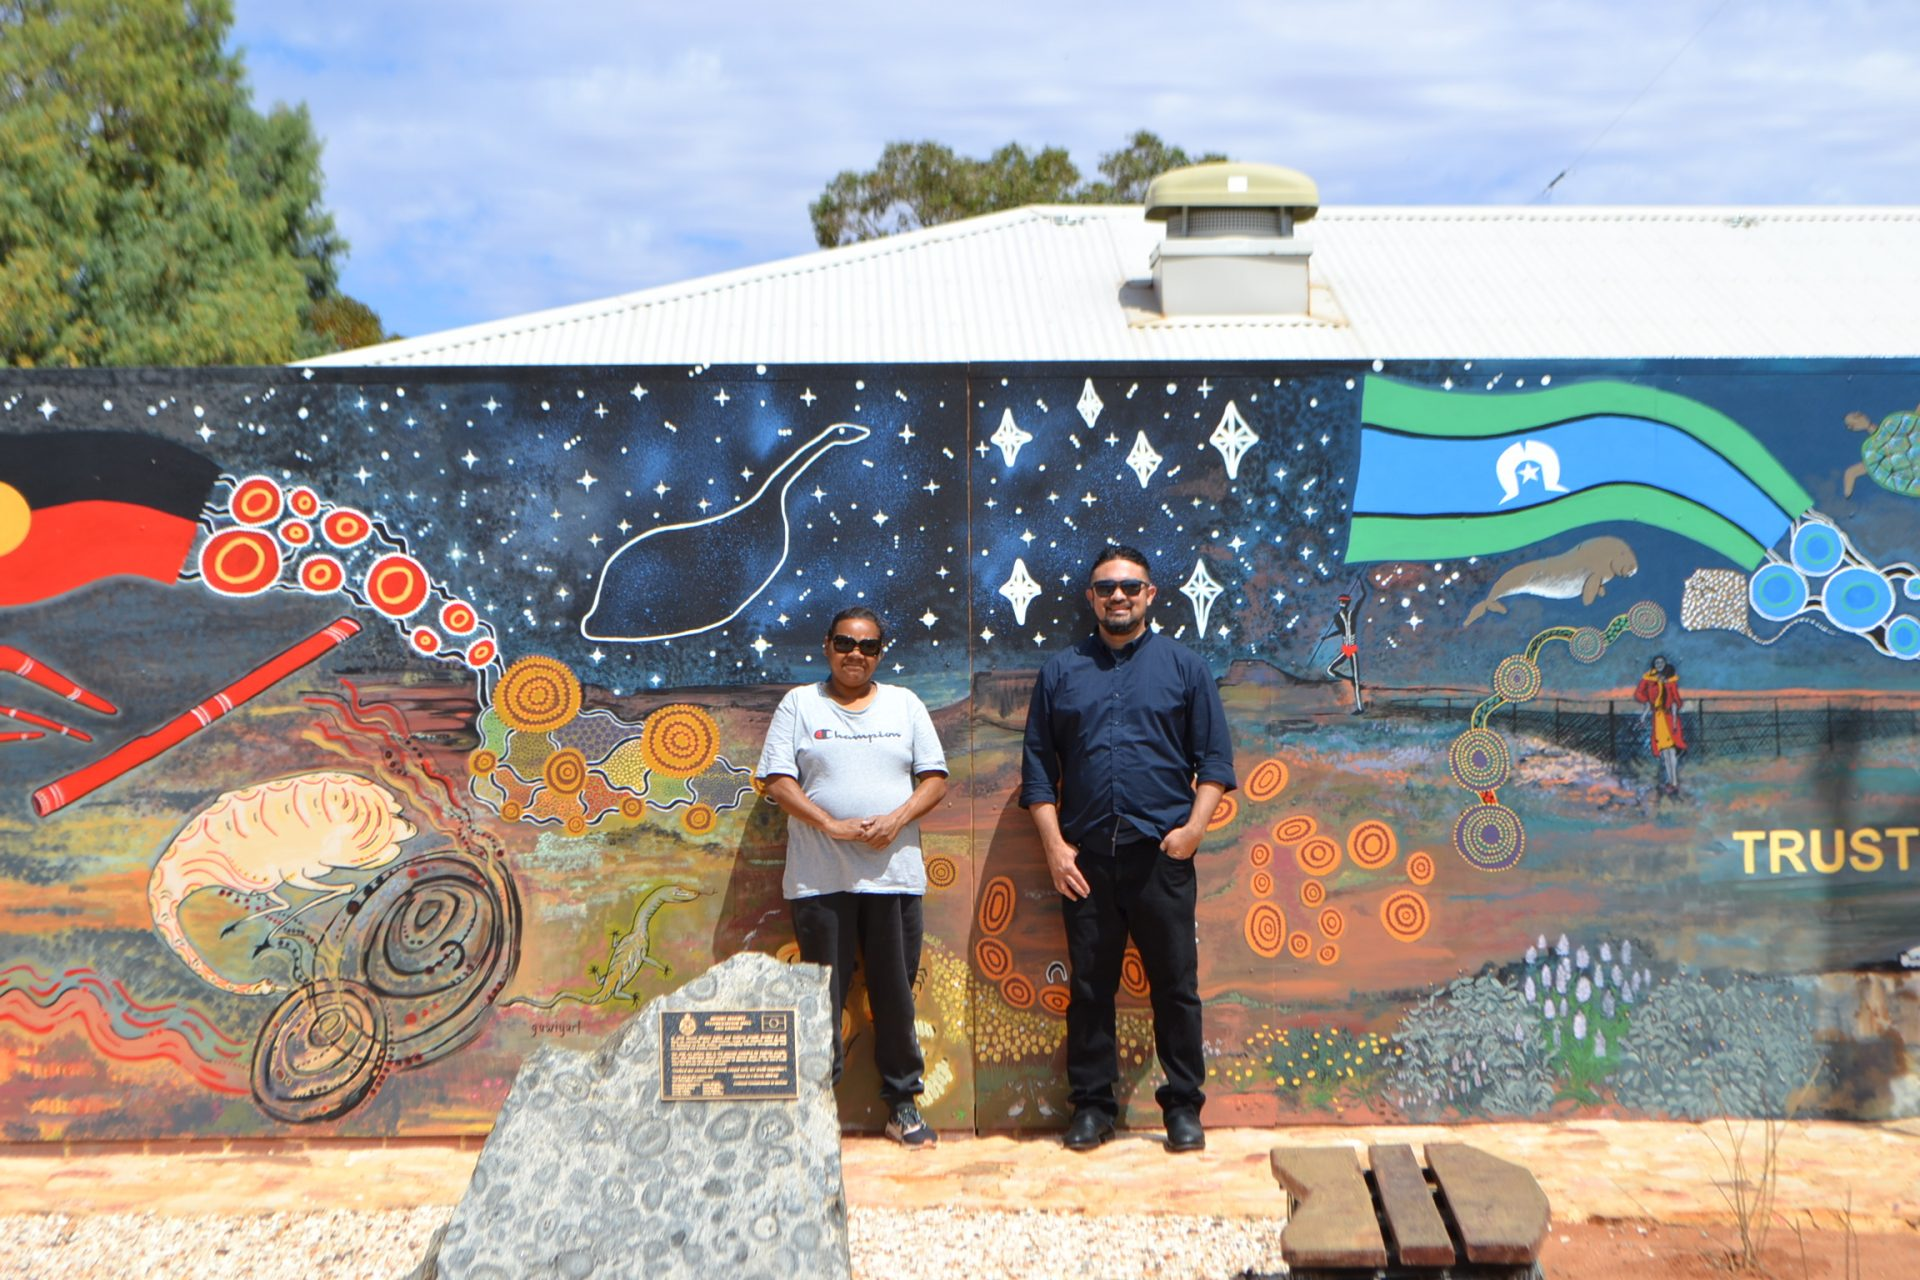 Joselyn Walsh, Art Supervisor Wirnda Barna and CEO AACHWA Chad Creighton in front of Police Station Mural completed by Wirnda Barna and local artists, Mount Magnet.